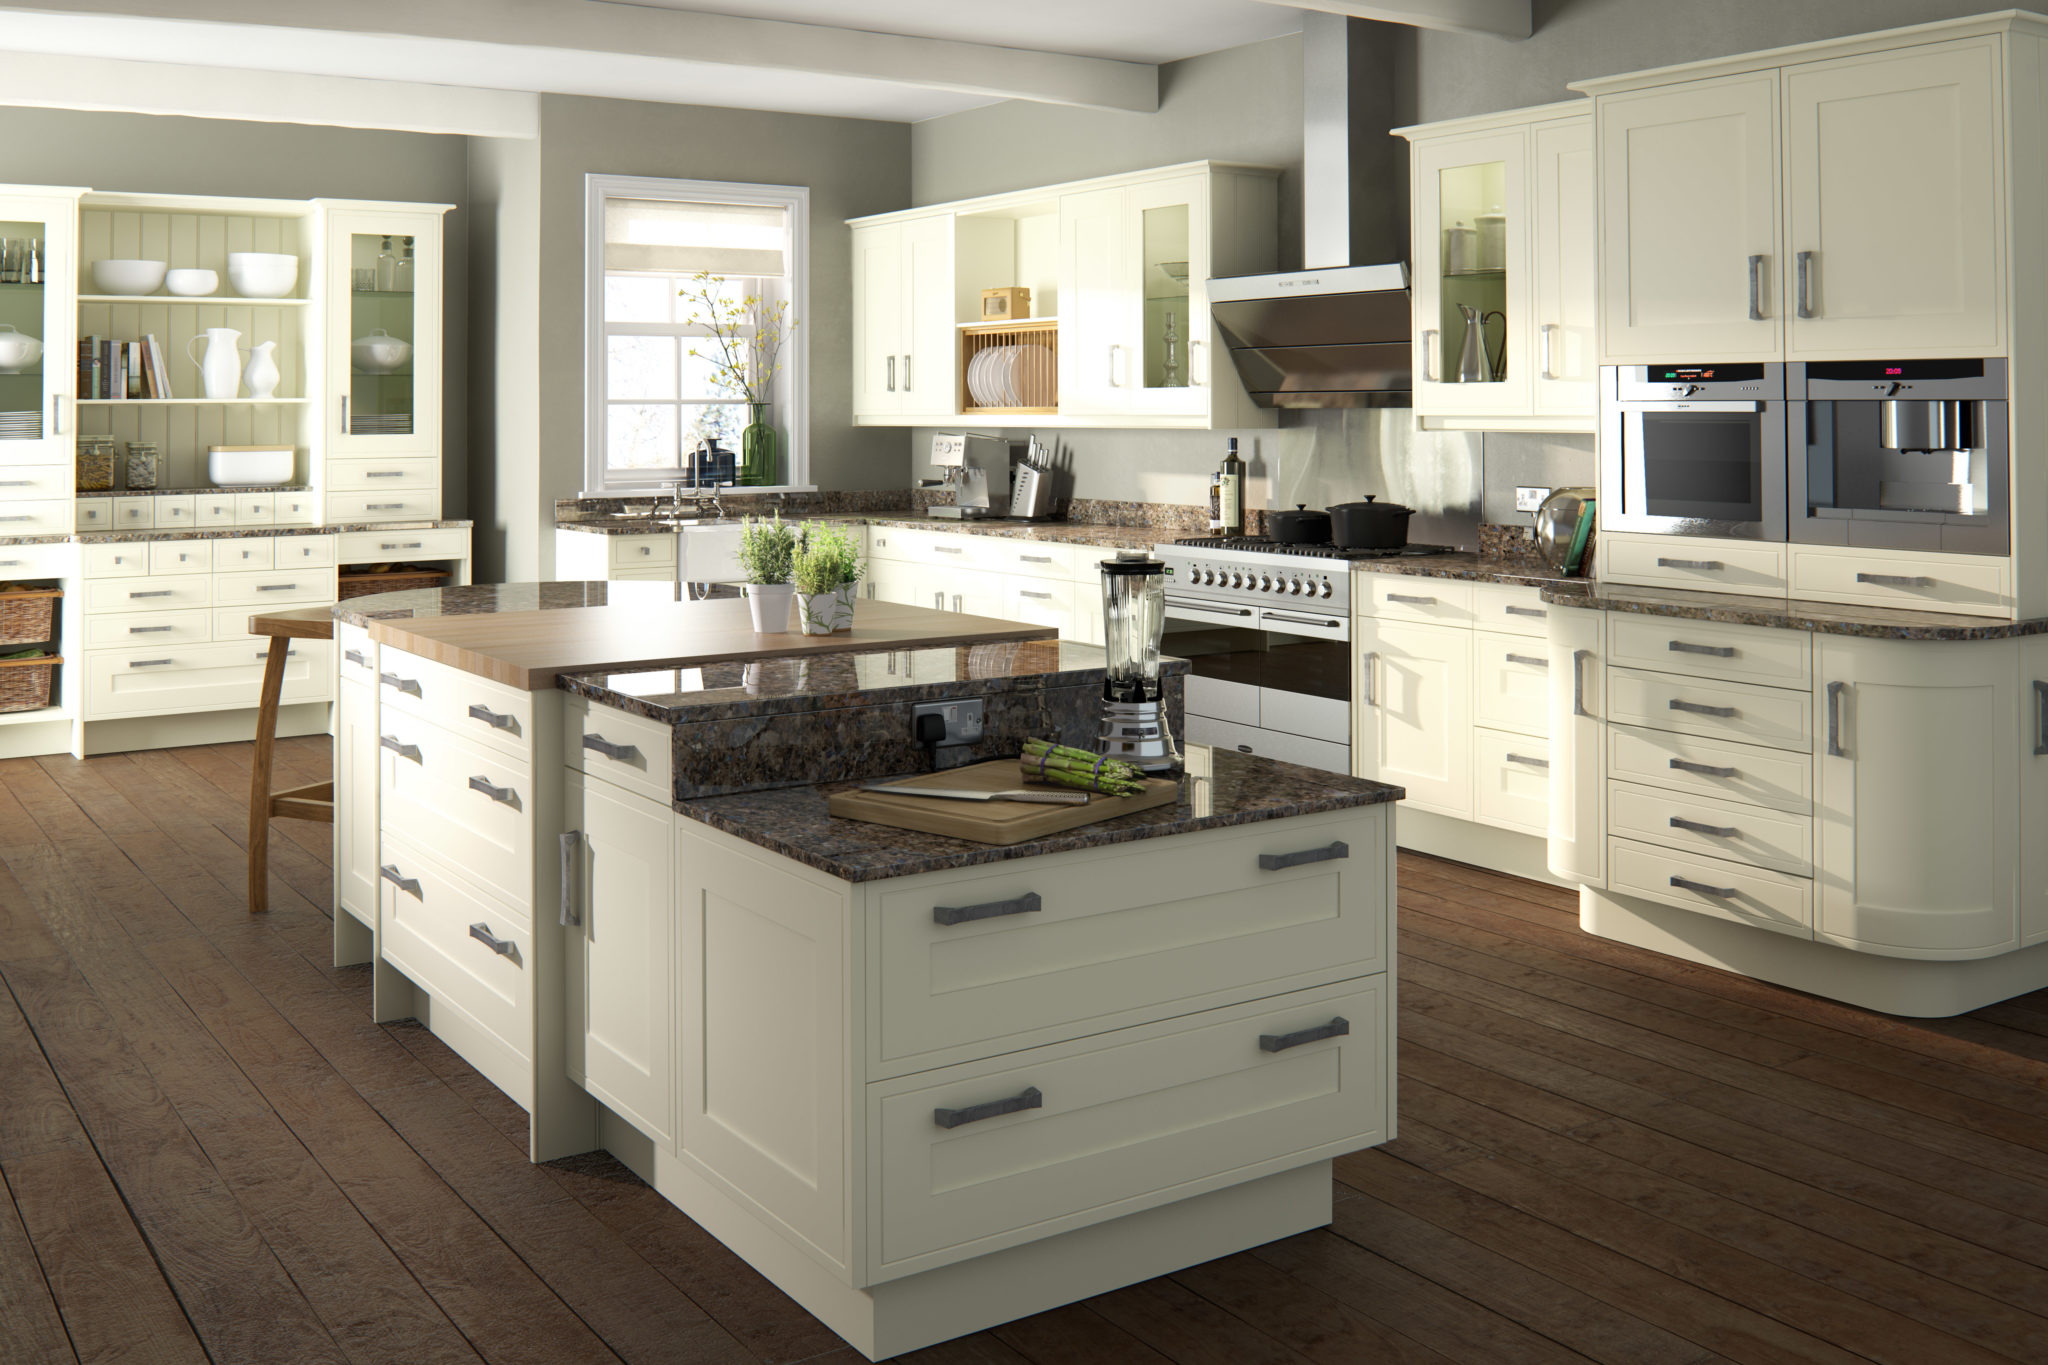 Kitchen Design Uk kitchen designers - free design service - exclusive designs